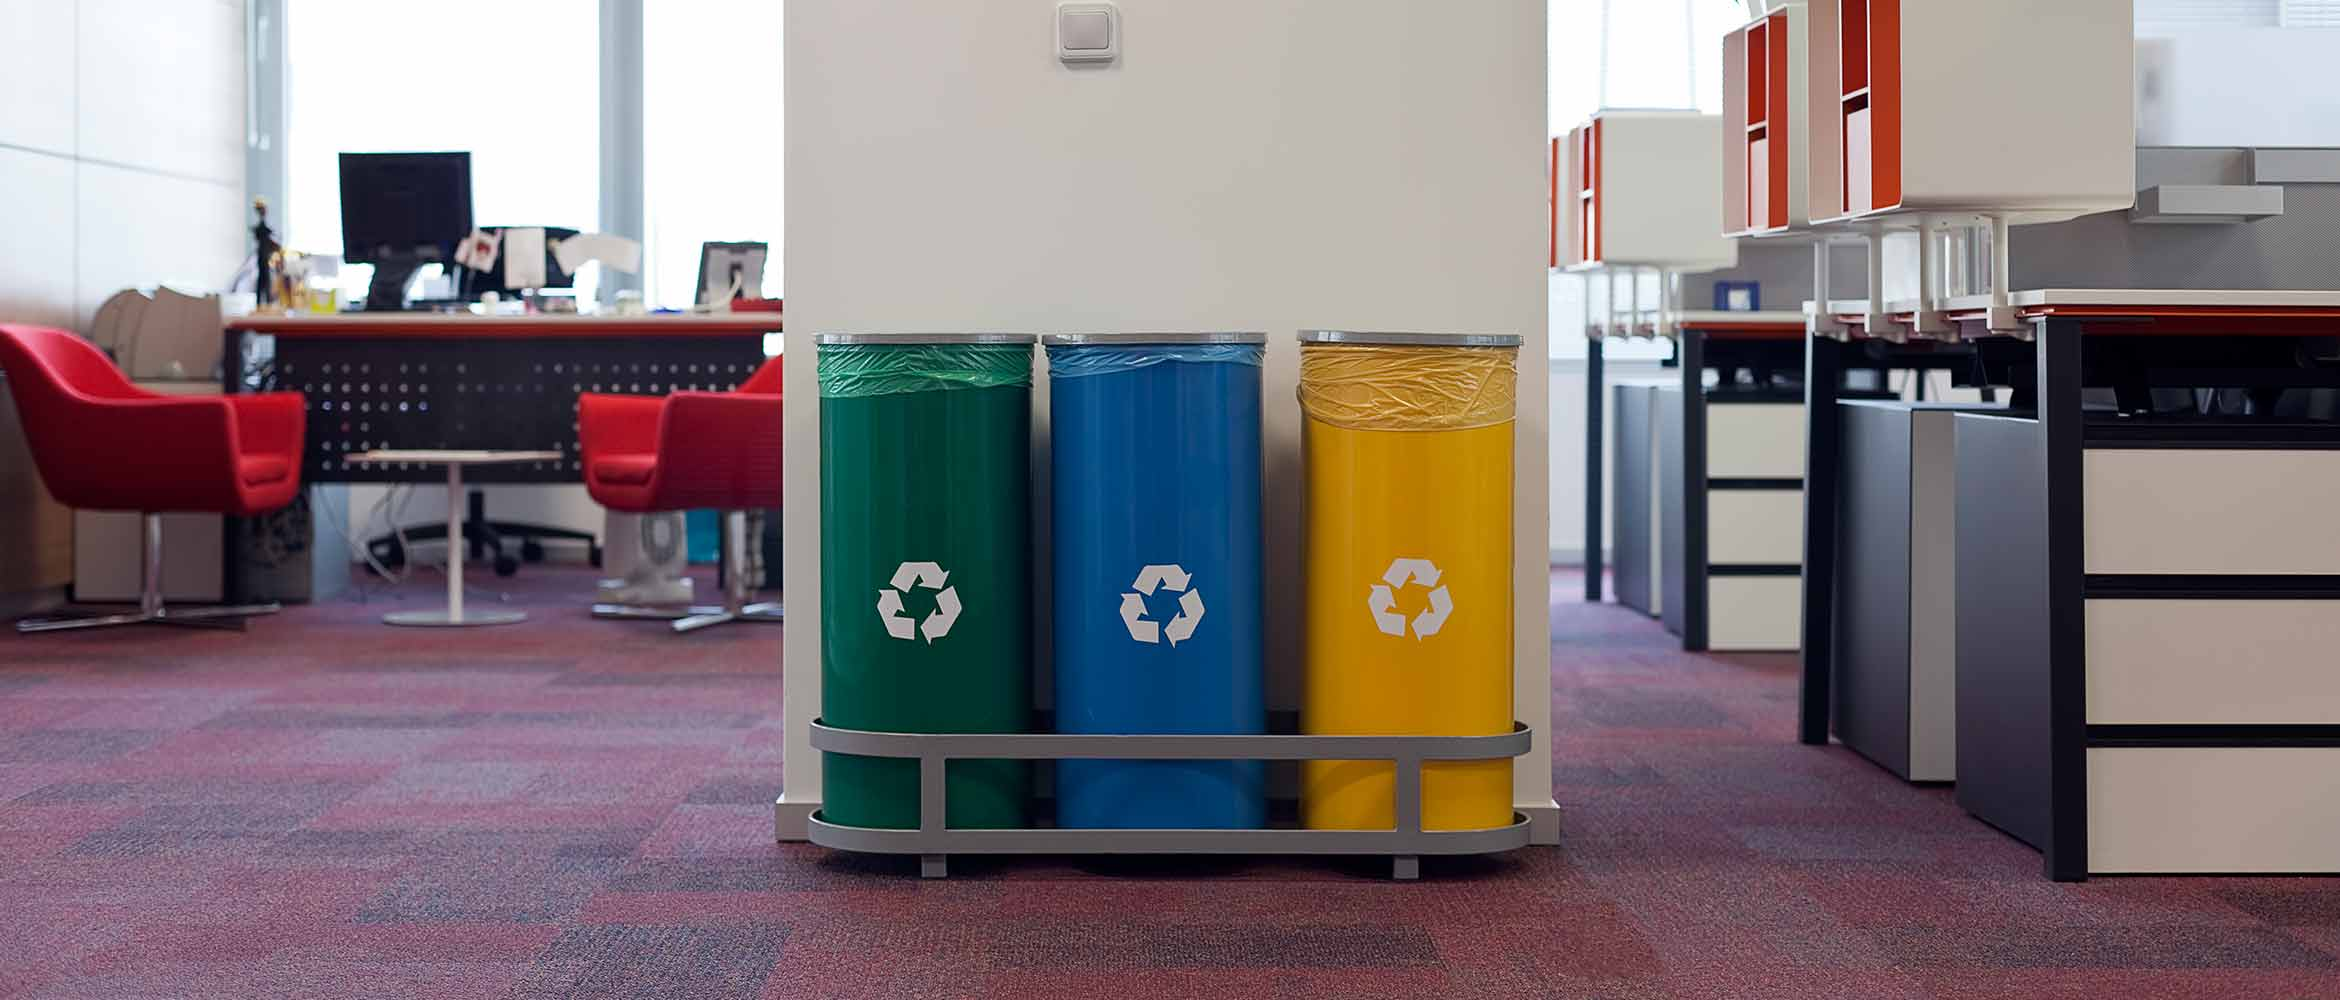 Recycling bins in an office setting